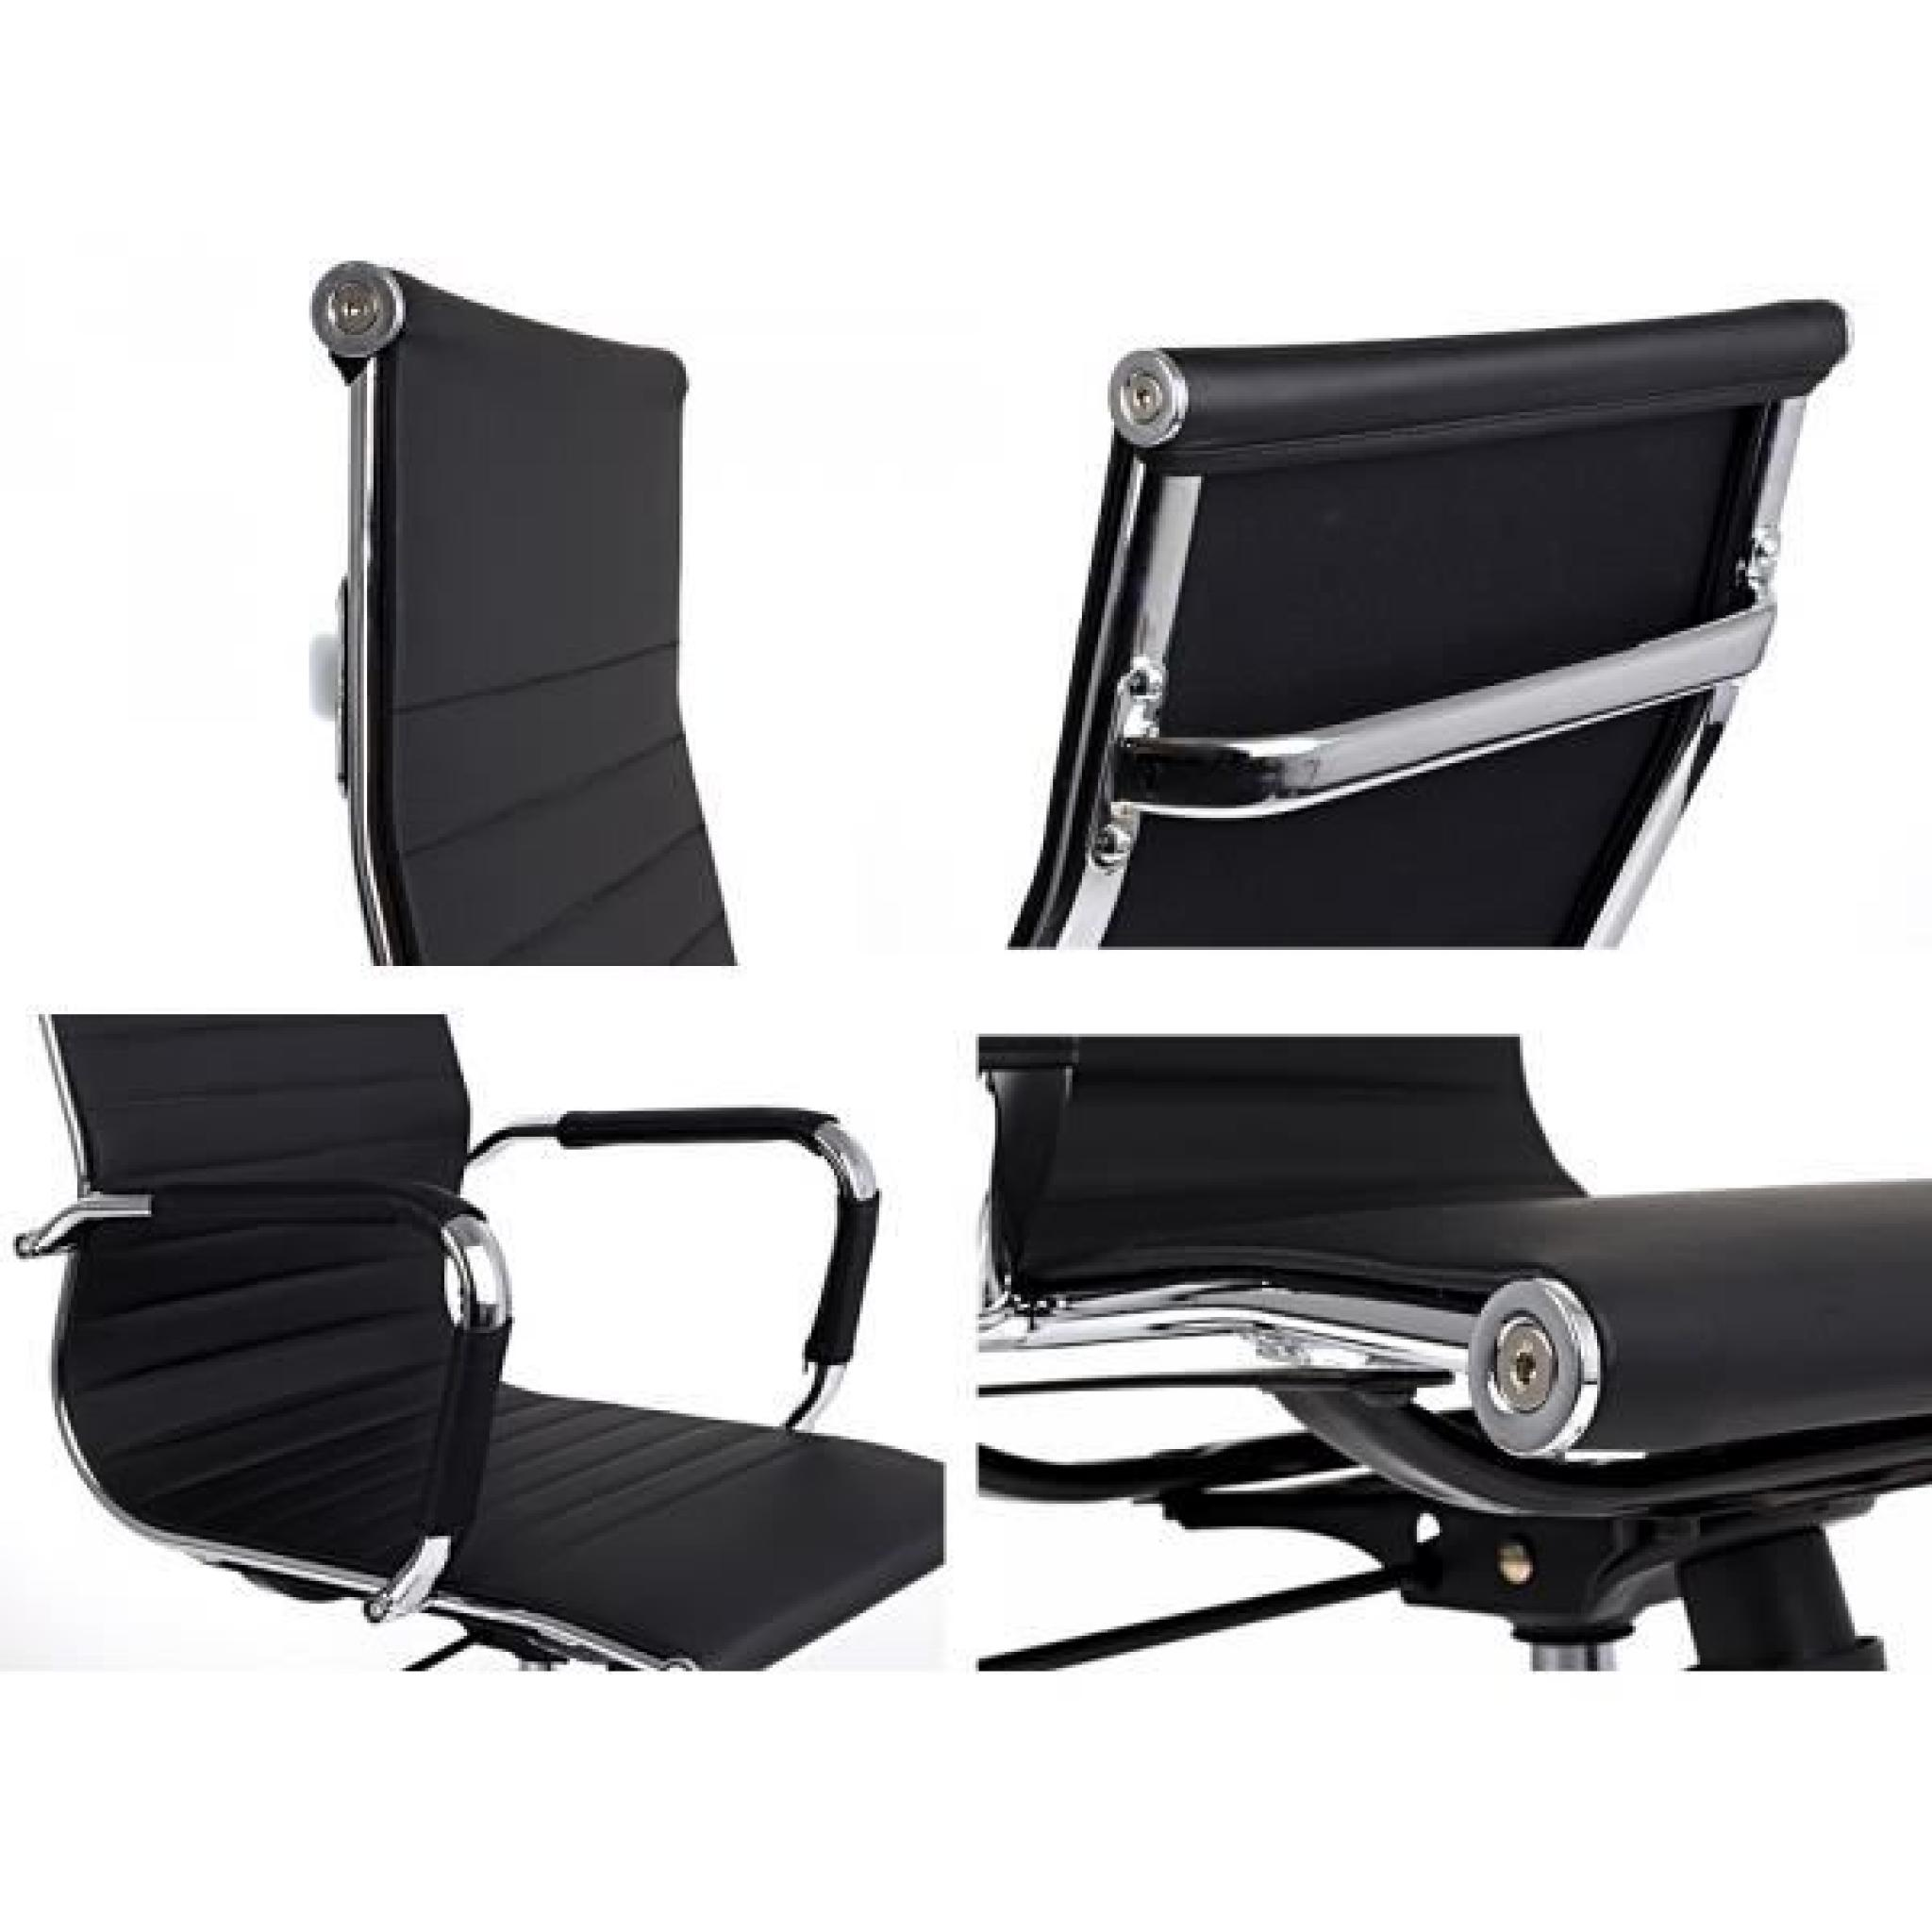 achat fauteuil de bureau le monde de l a. Black Bedroom Furniture Sets. Home Design Ideas